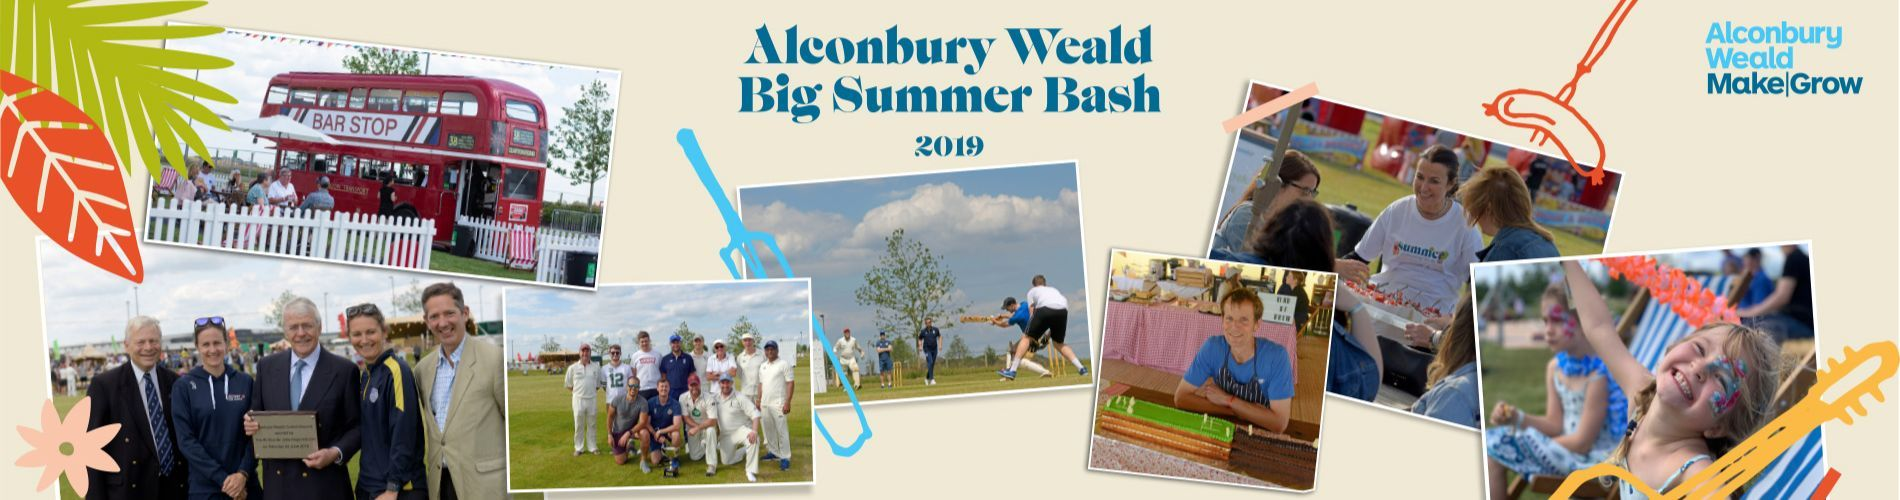 26.06.19_Over 600 visitors attend the first ever Alconbury Weald big summer bash.jpg